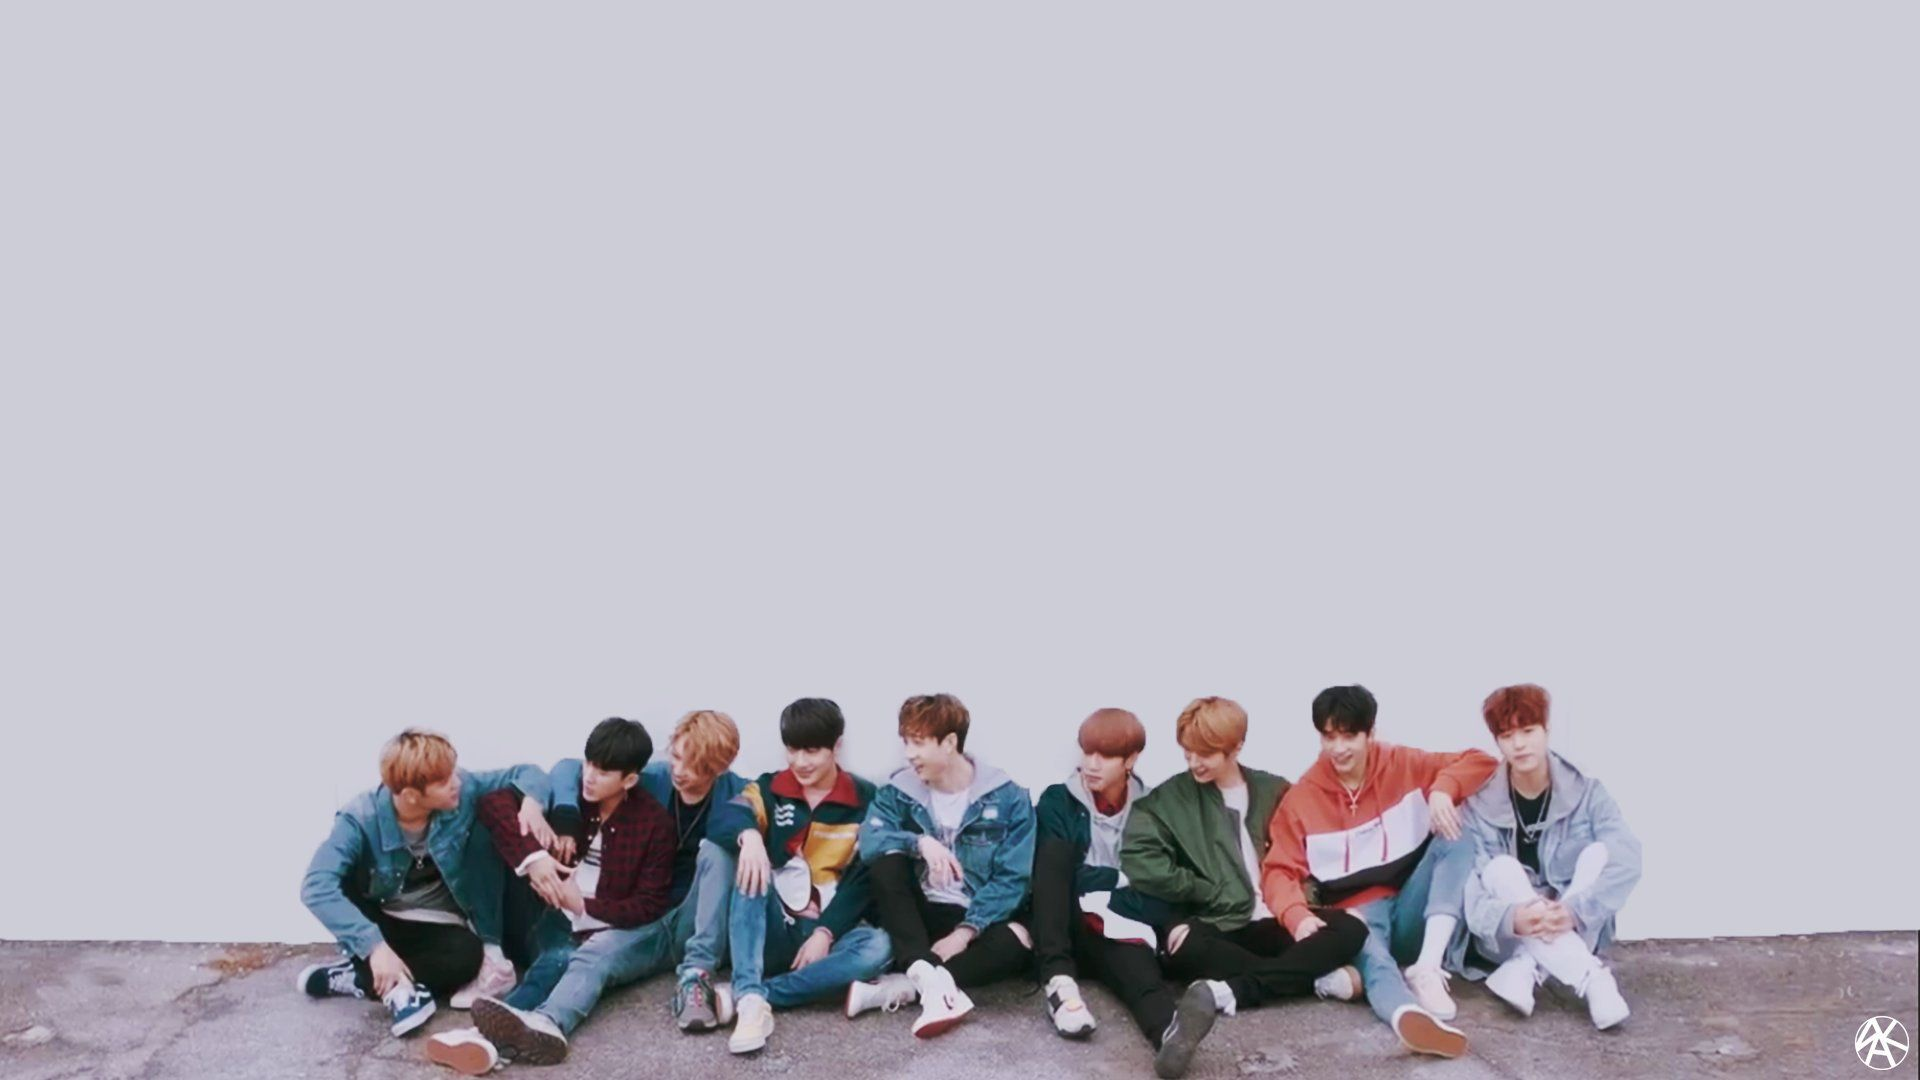 Stray Kids Wallpaper Hd Image Search Results